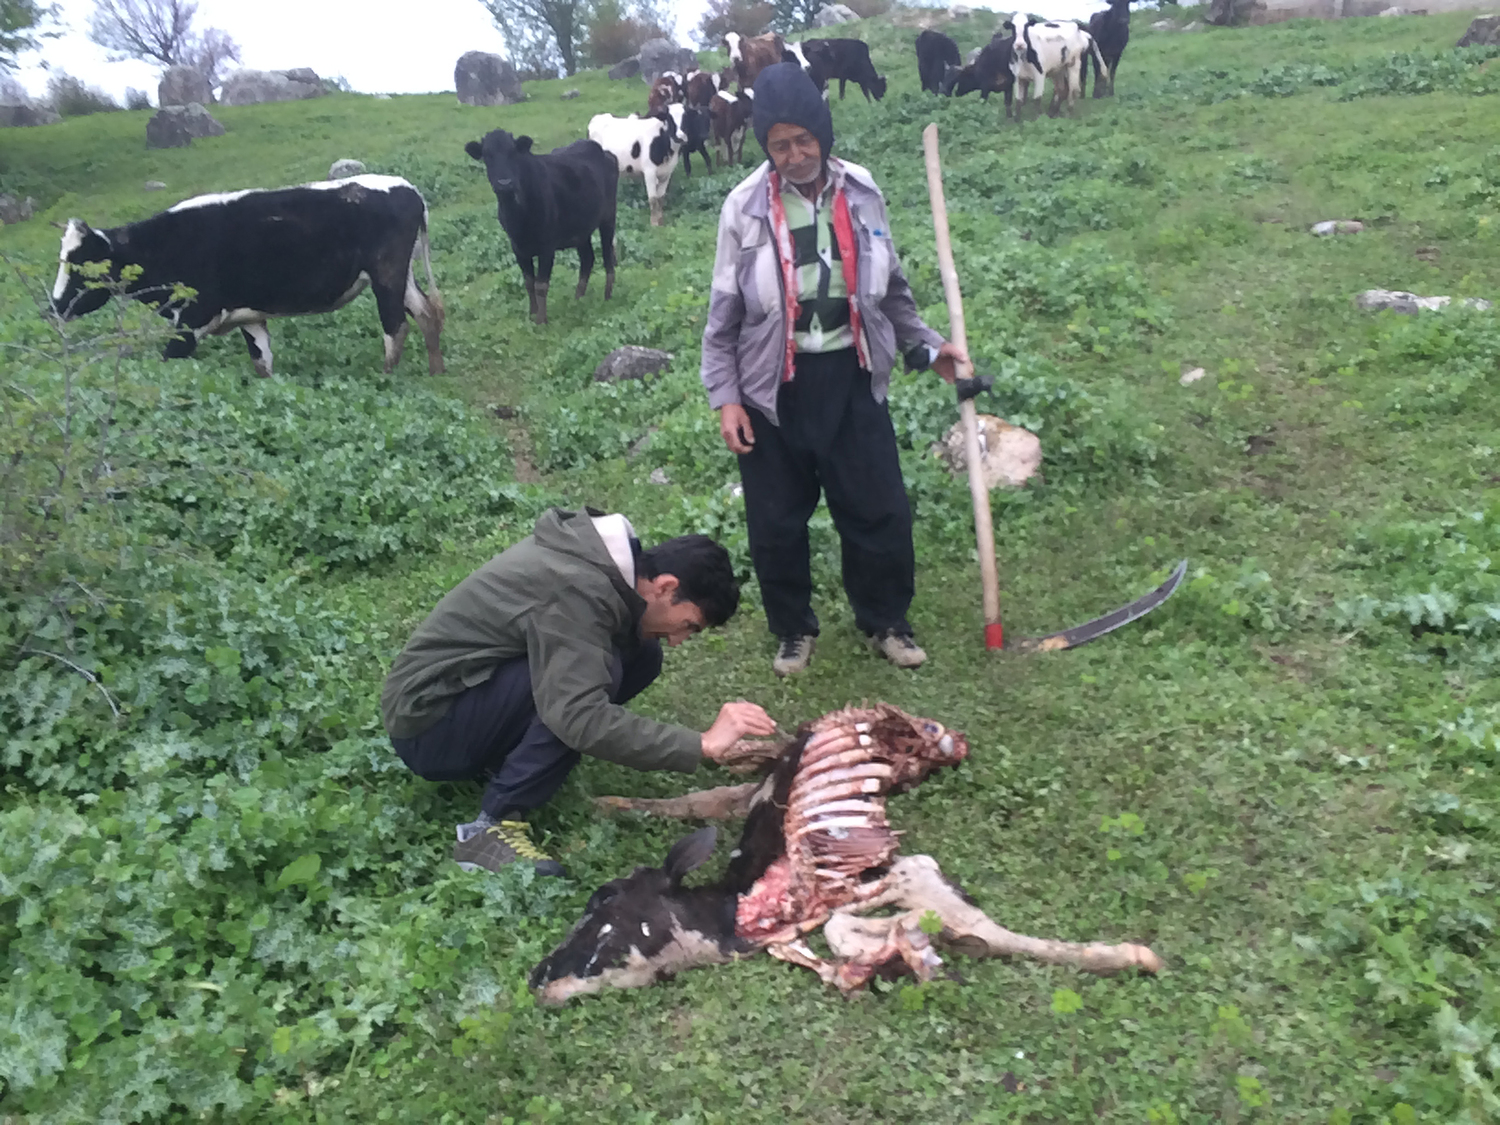 Dr. Mahmood Soofi investigating cattle killed by wolf pack near Golestan National park, Iran.